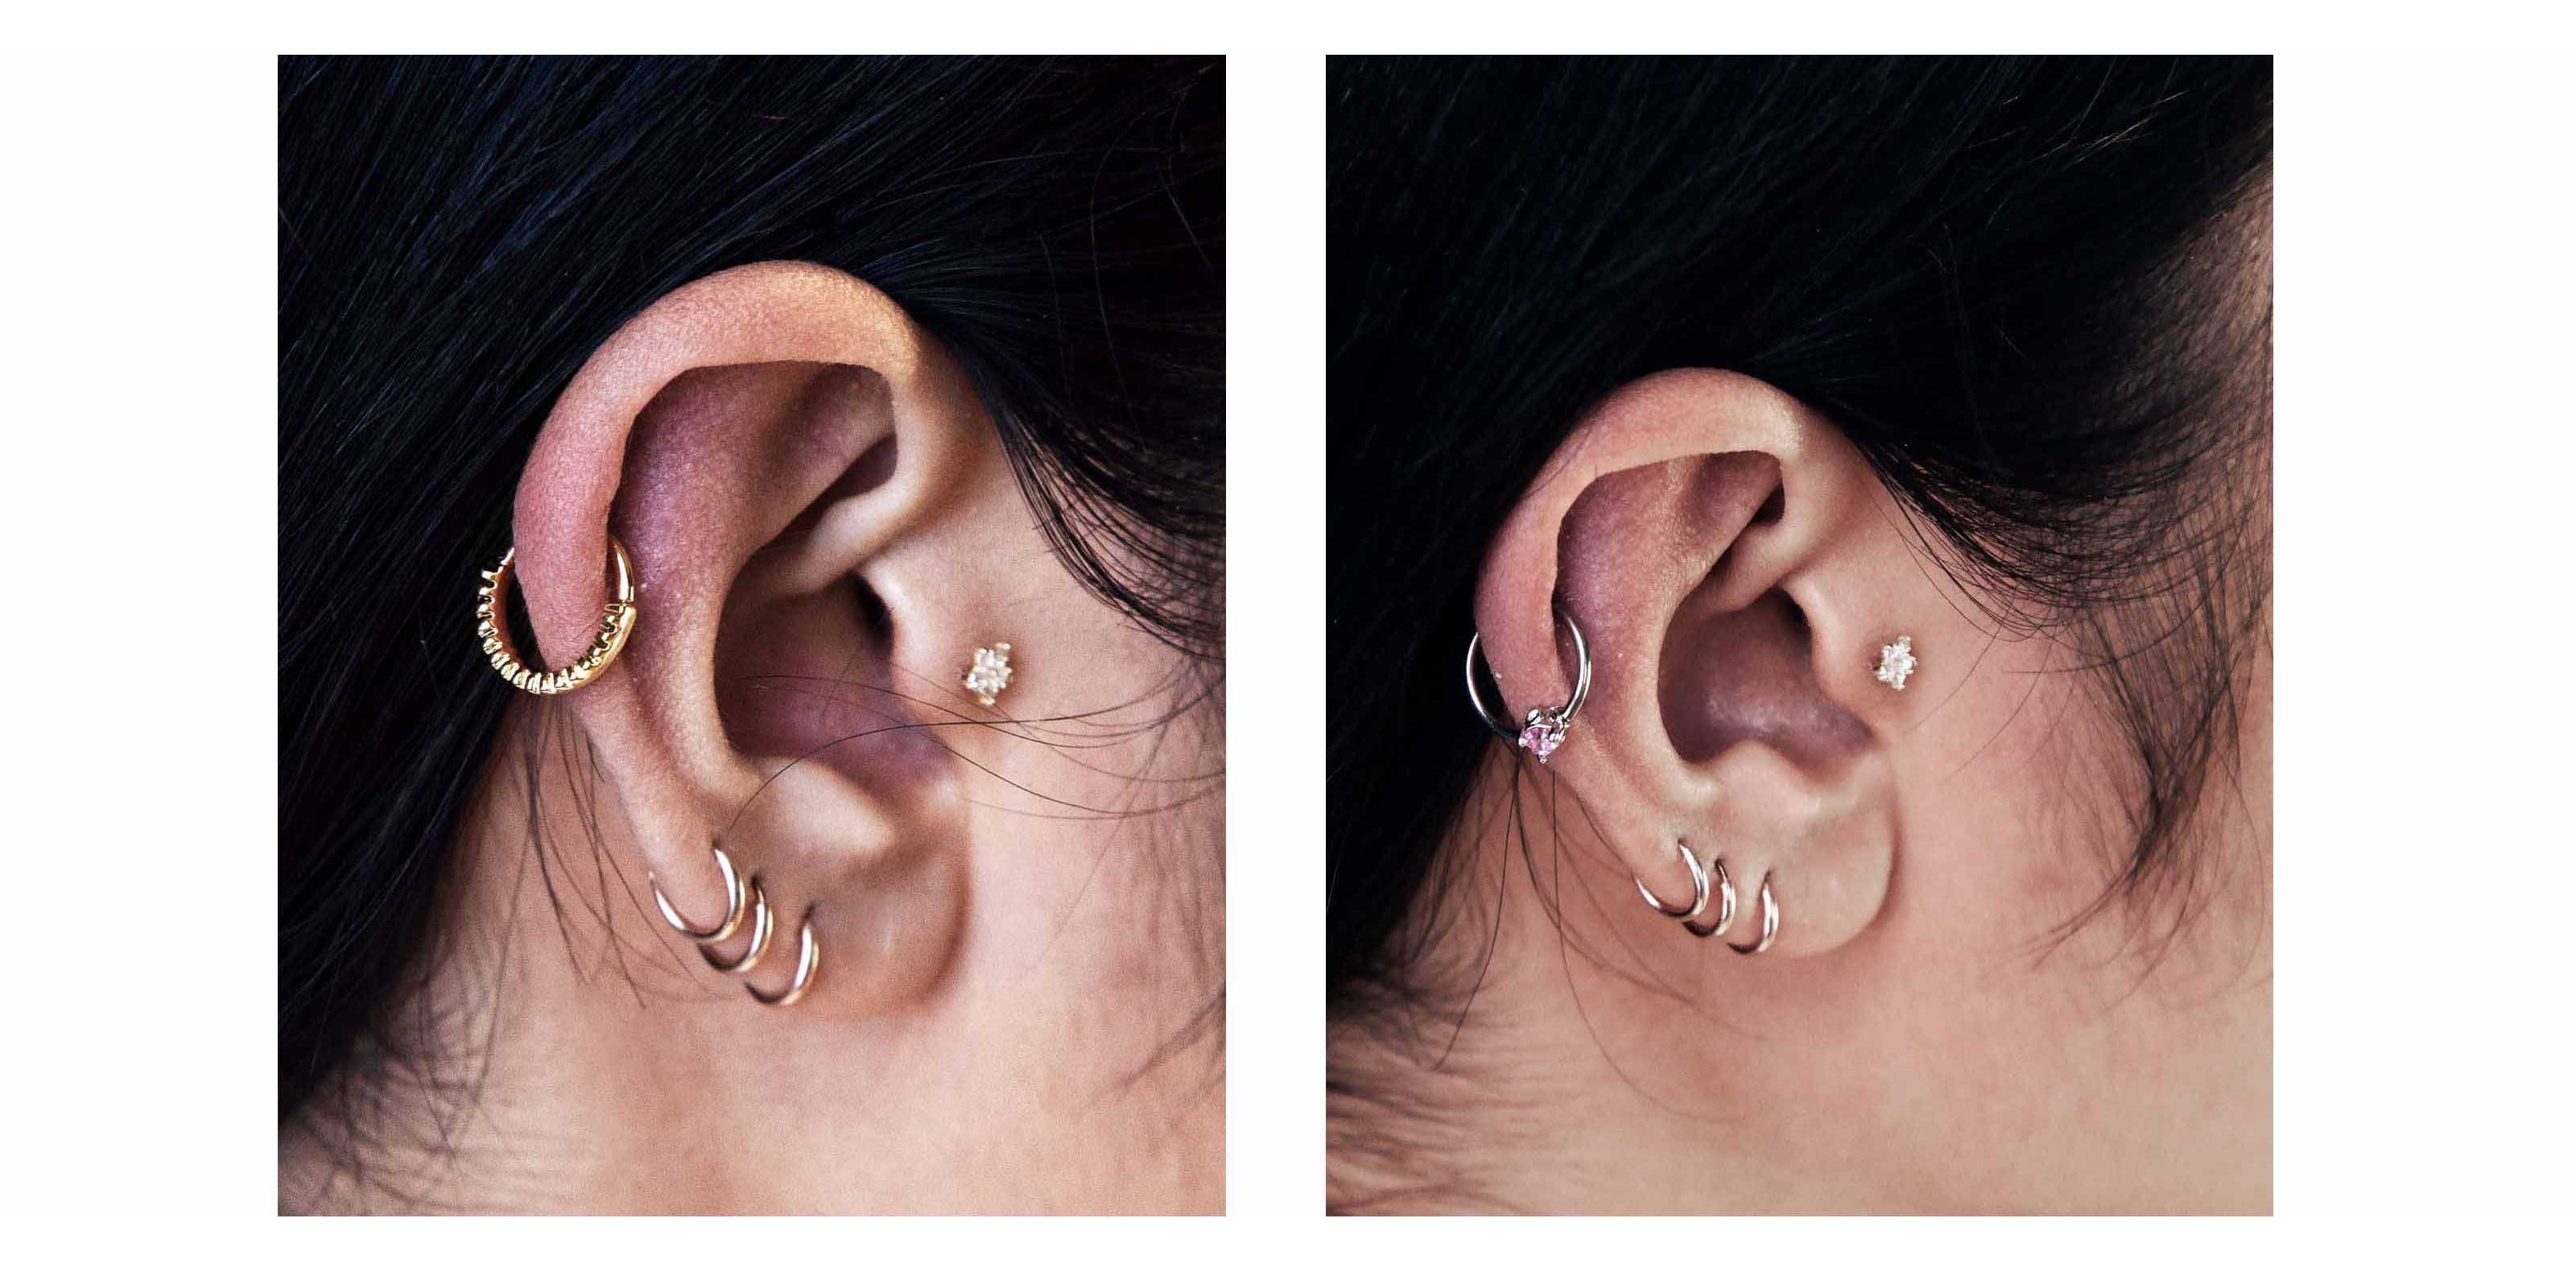 upper cartilage of the ear for an edgy finish to your ear curation stack multiple hoops and combi it with dangly lobe piercings for a look bad girl  [ 3200 x 1580 Pixel ]